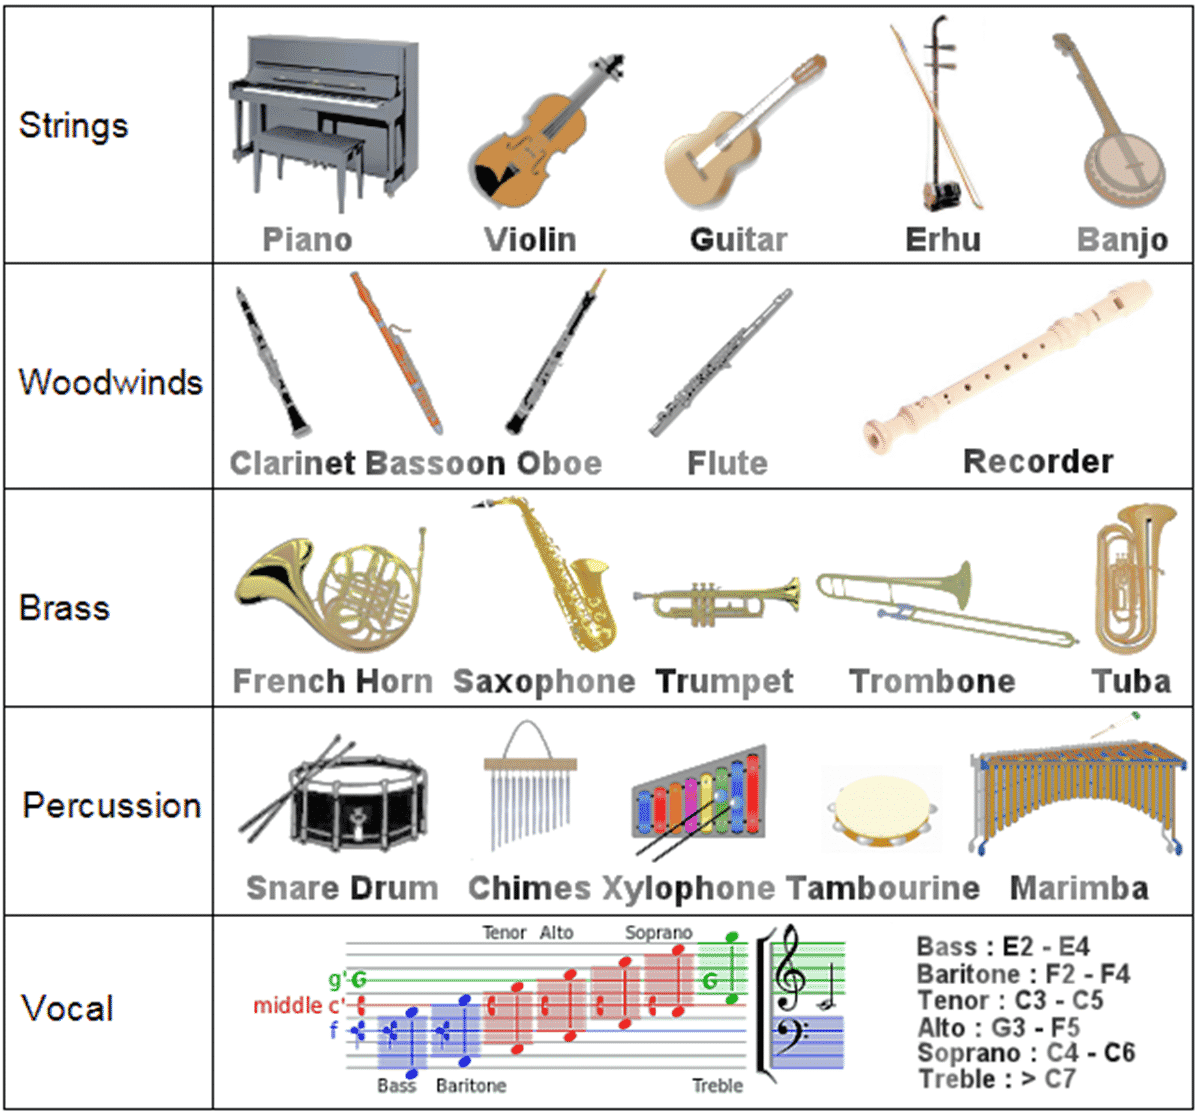 Tools, Equipment, Devices and Home Appliances Vocabulary: 300+ Items Illustrated 25